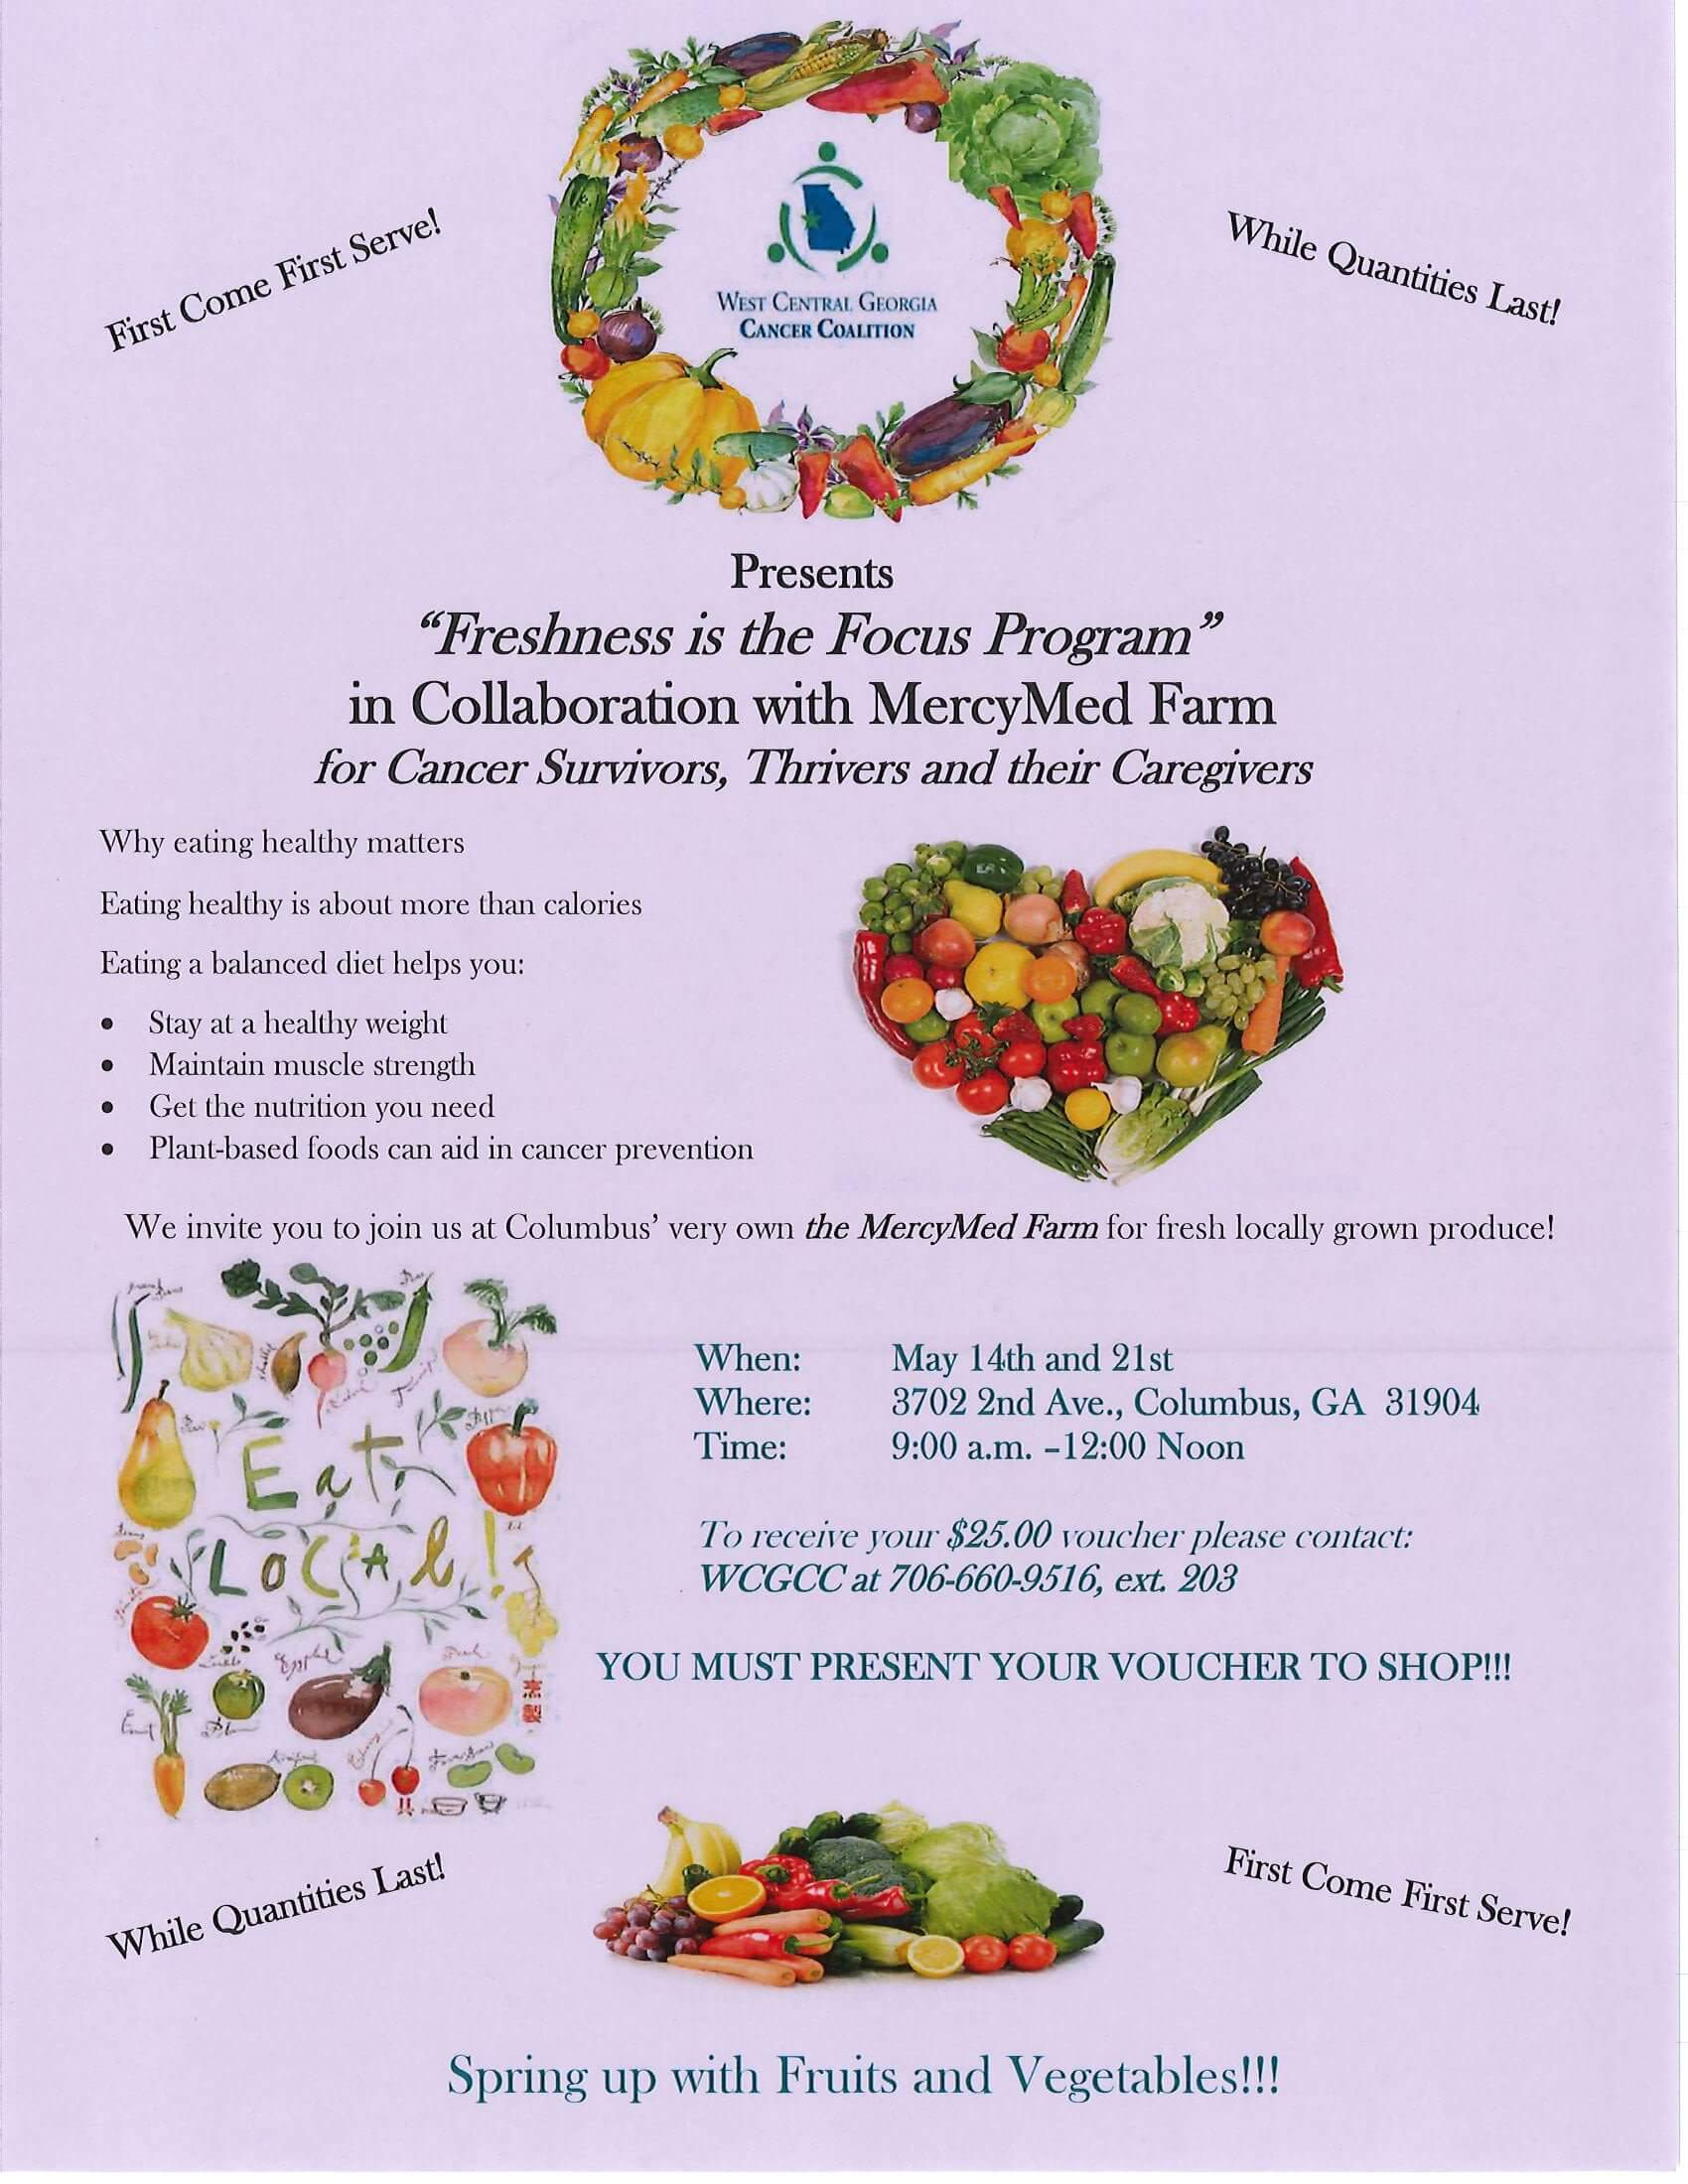 Learn about healthy eating with WCGCC and MercyMed Farm